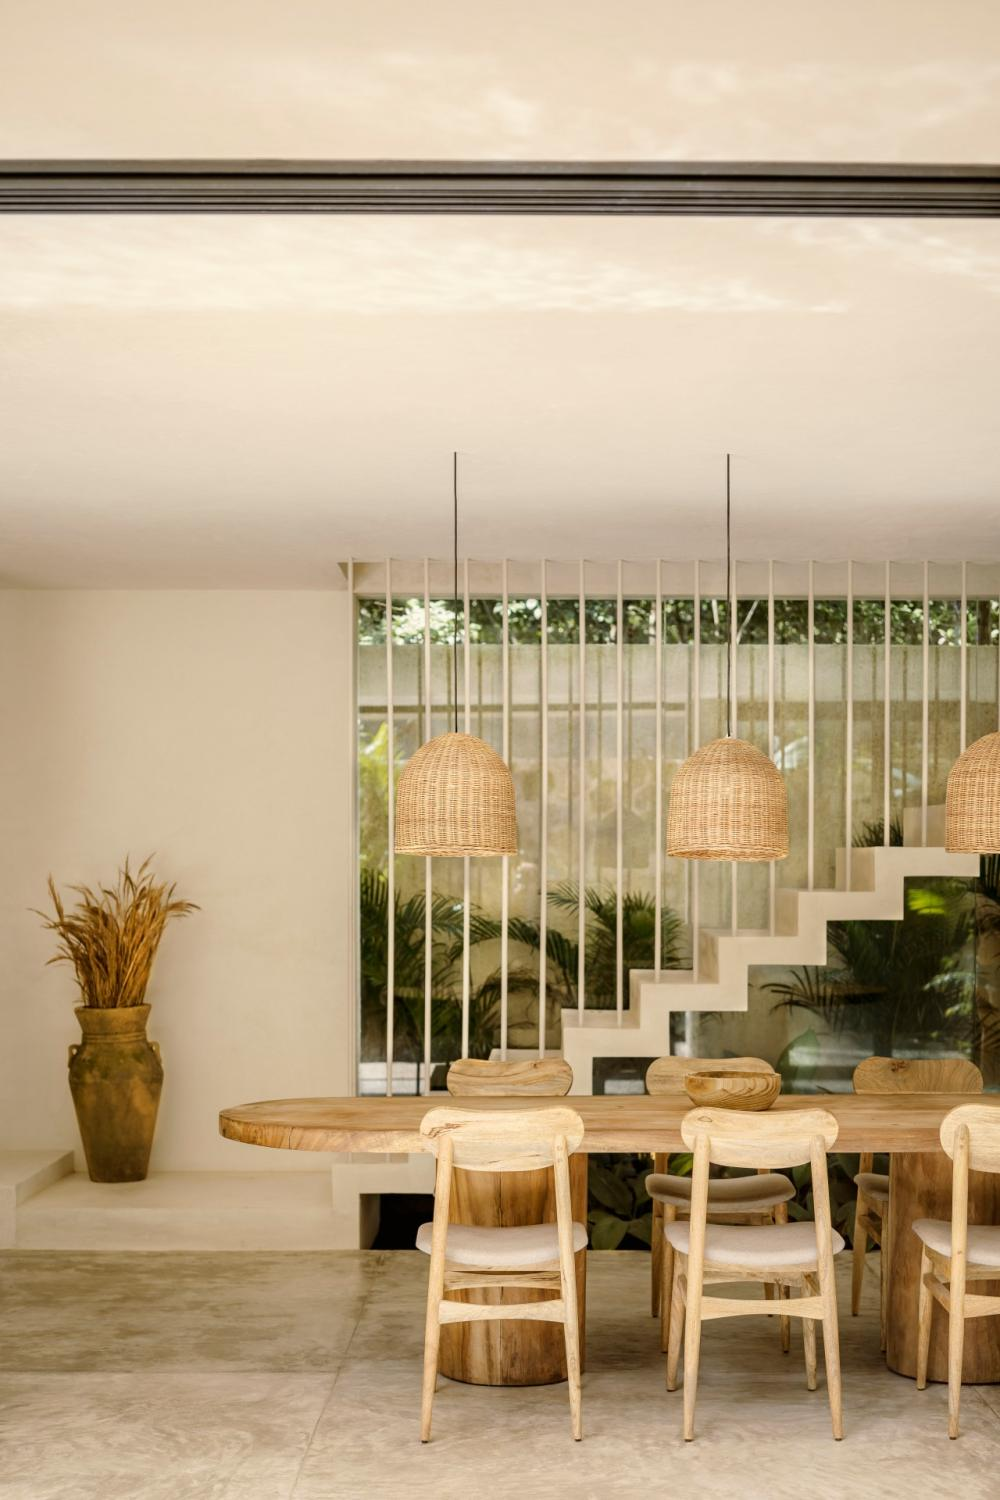 House tour: a peaceful, tropical holiday home in the trendy Mexican beach town of Tulum-9.jpg